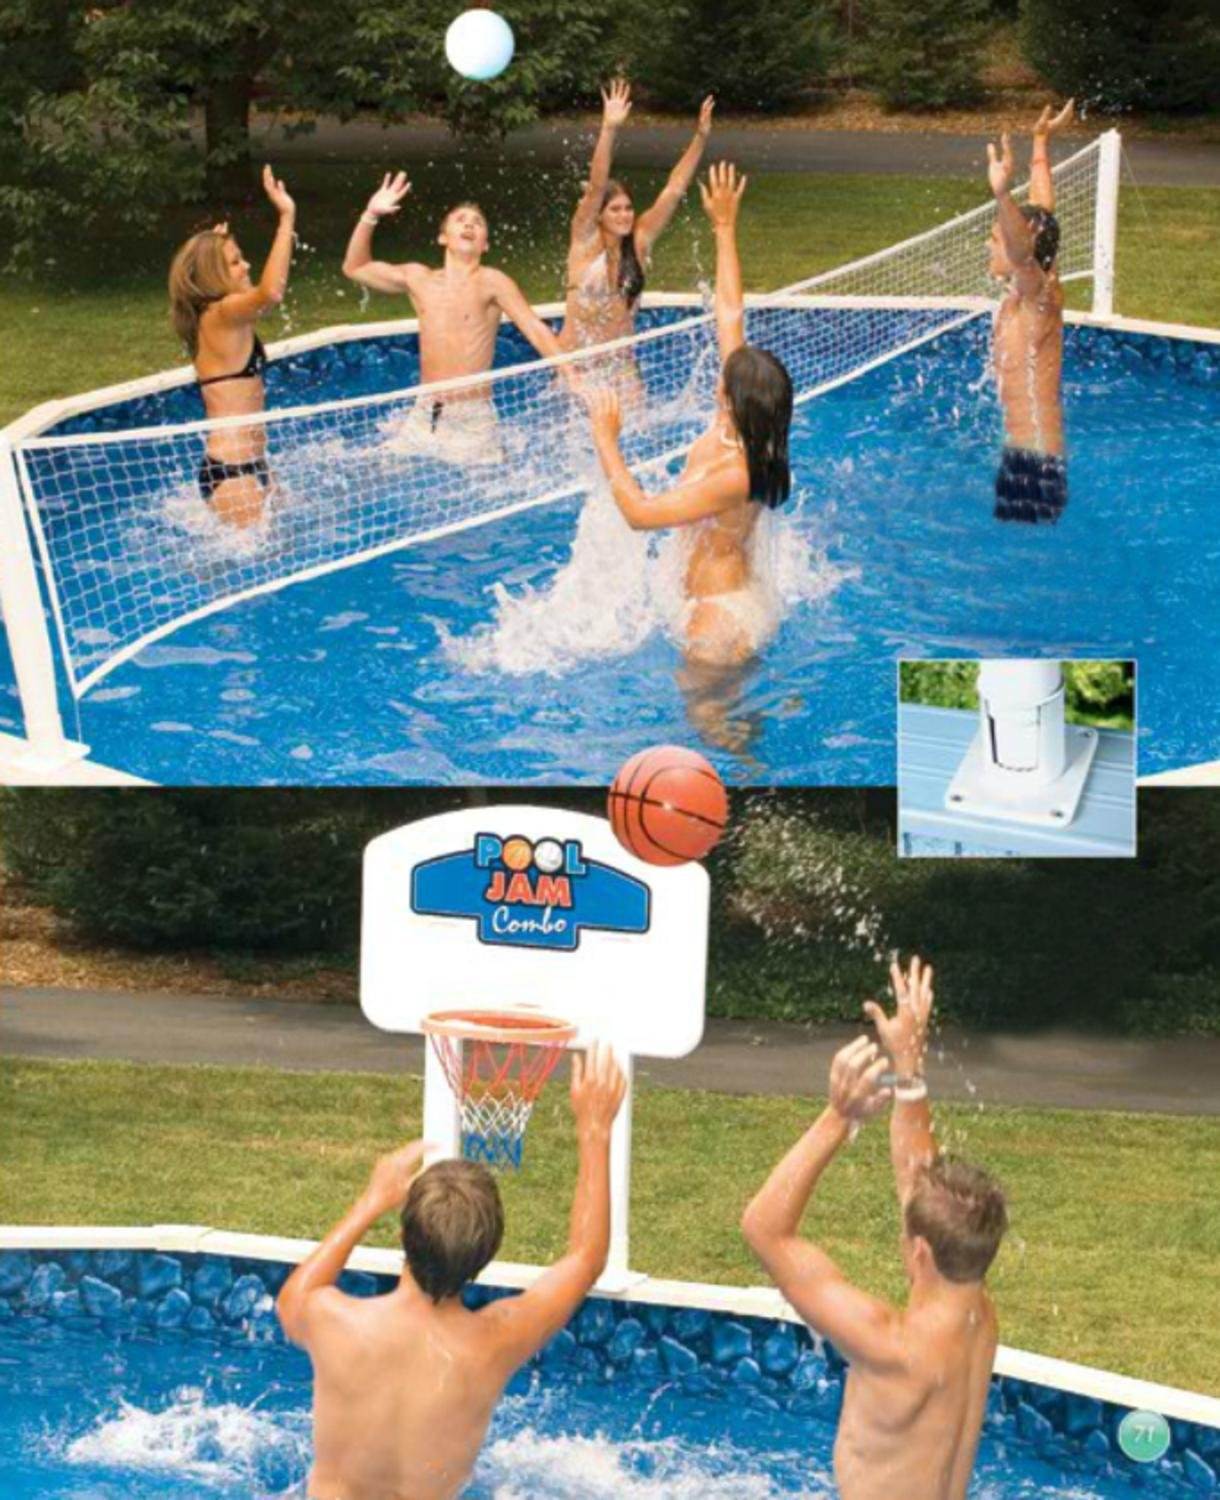 Pool Jam Combo Basketball and Volleyball Above Ground Swimming Pool Game by Swim Central (Image #1)